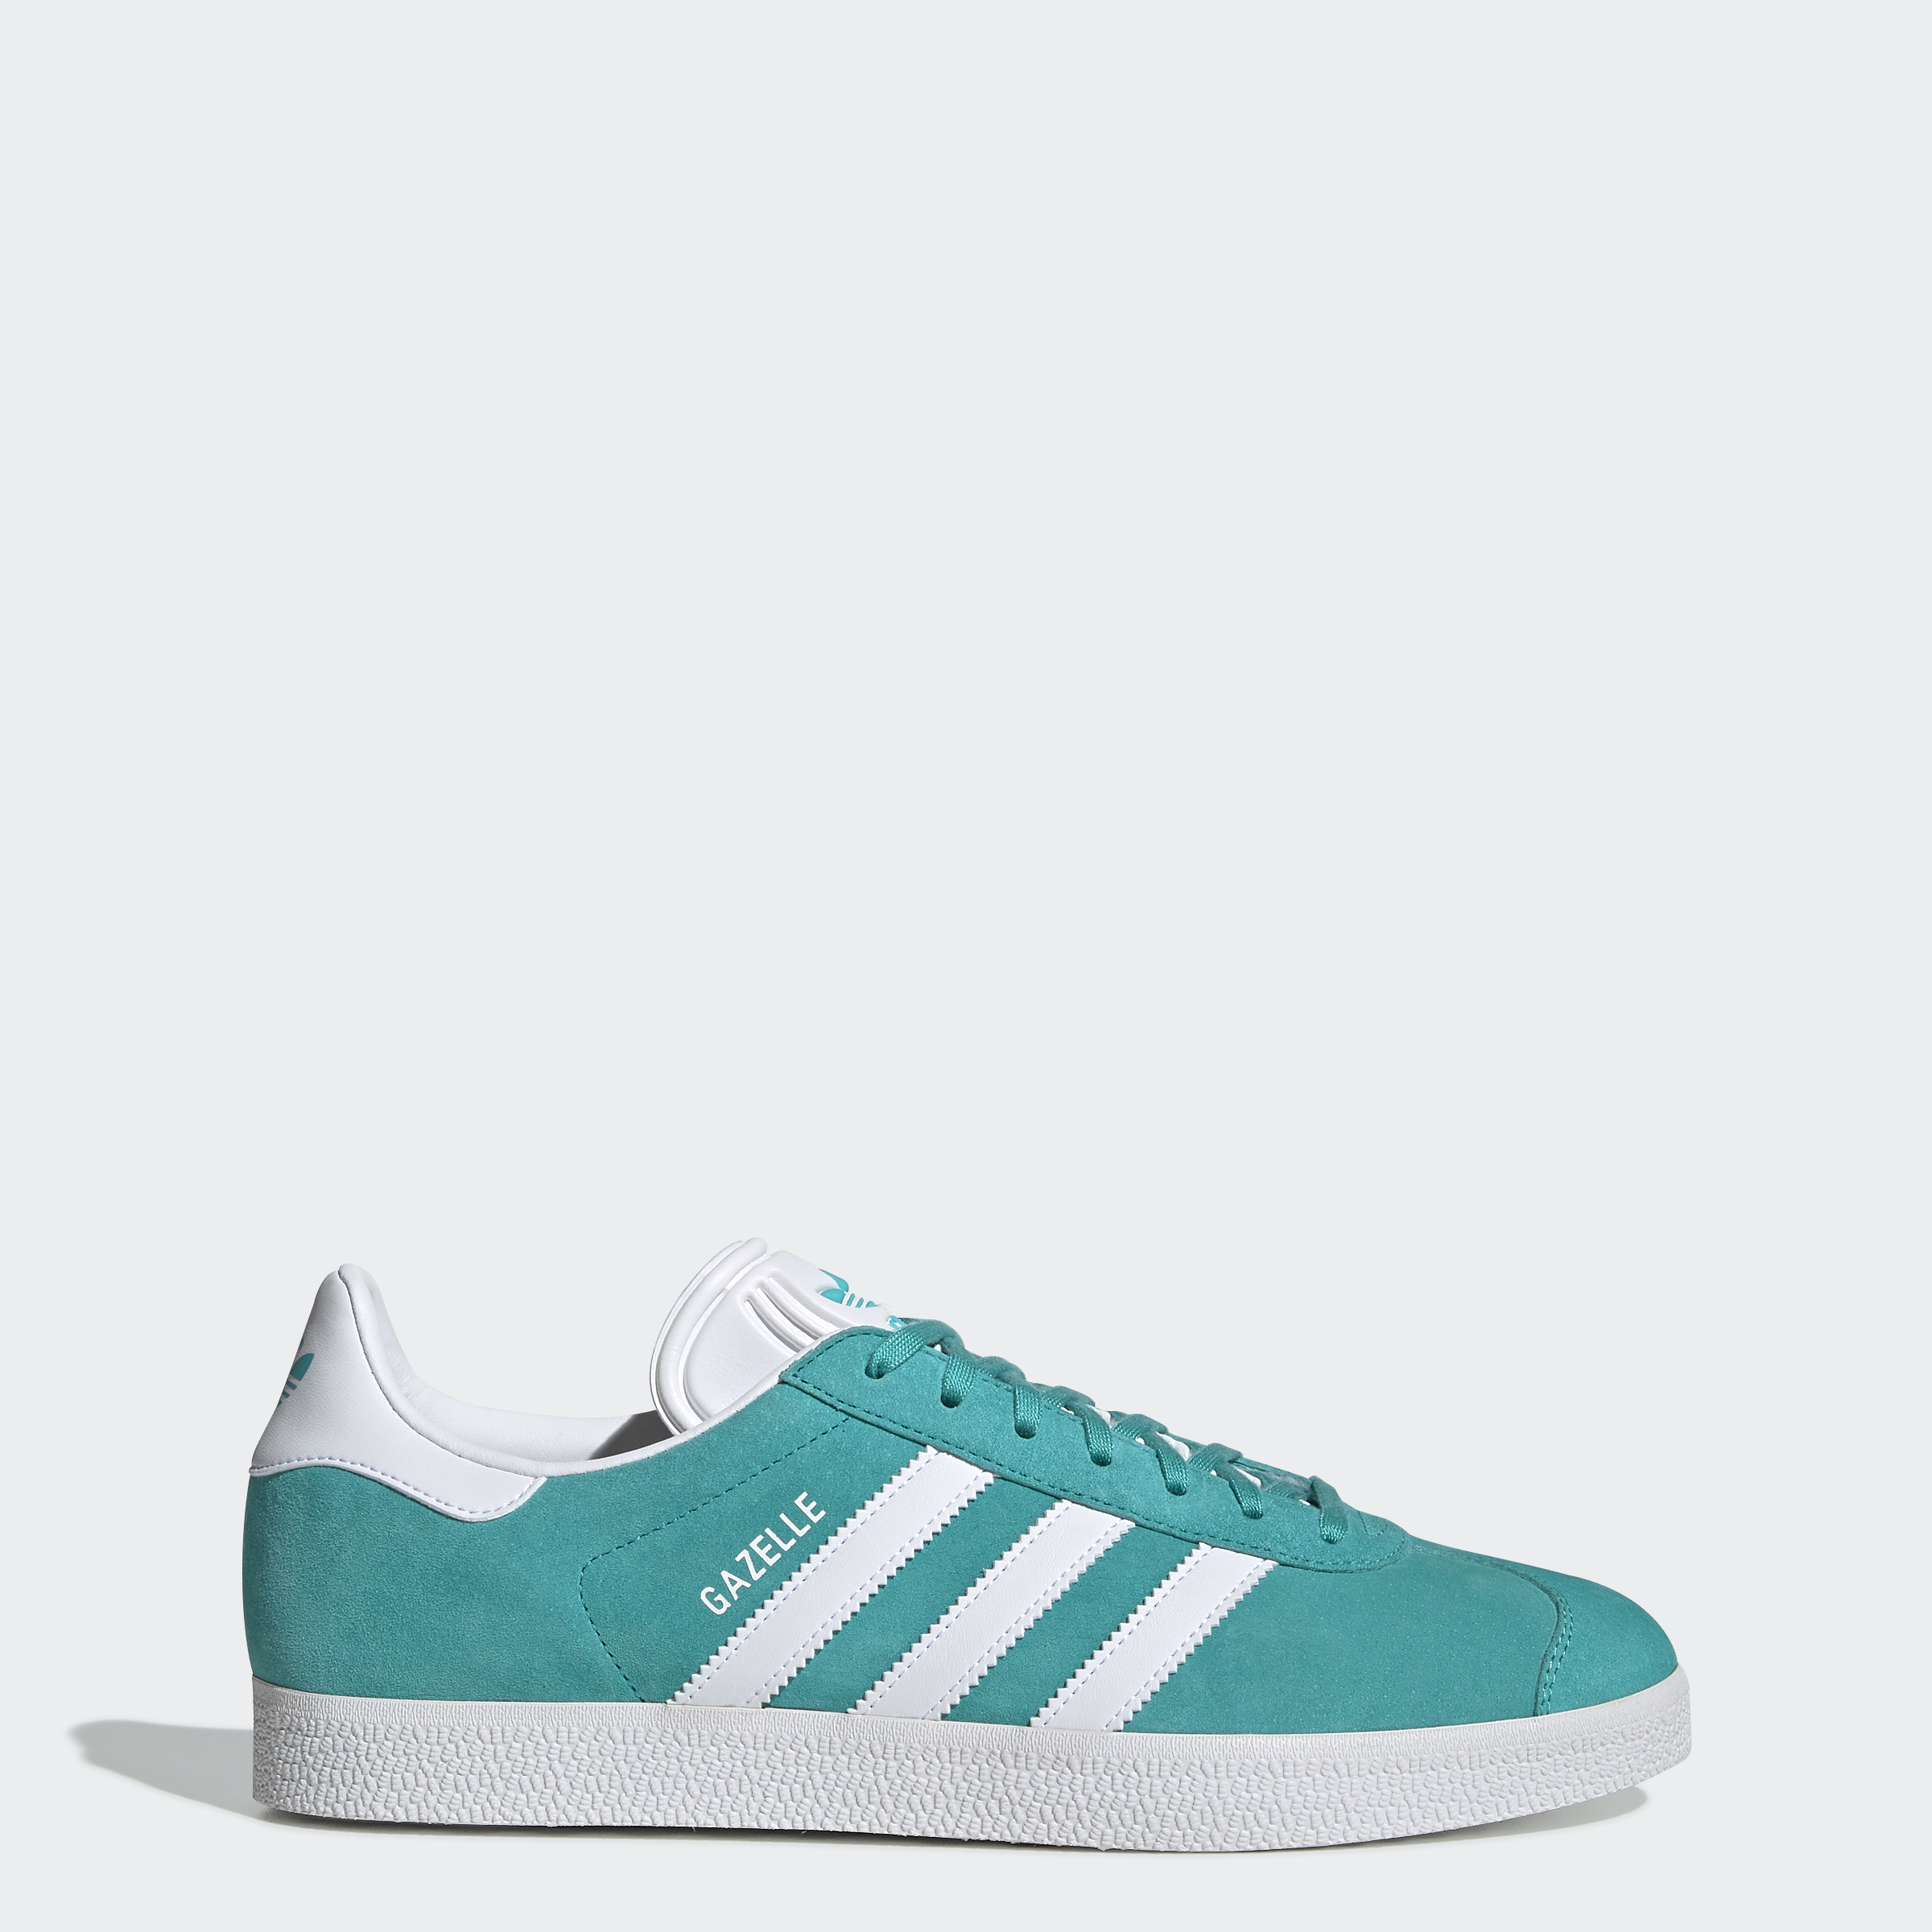 adidas-Originals-Gazelle-Shoes-Men-039-s thumbnail 37